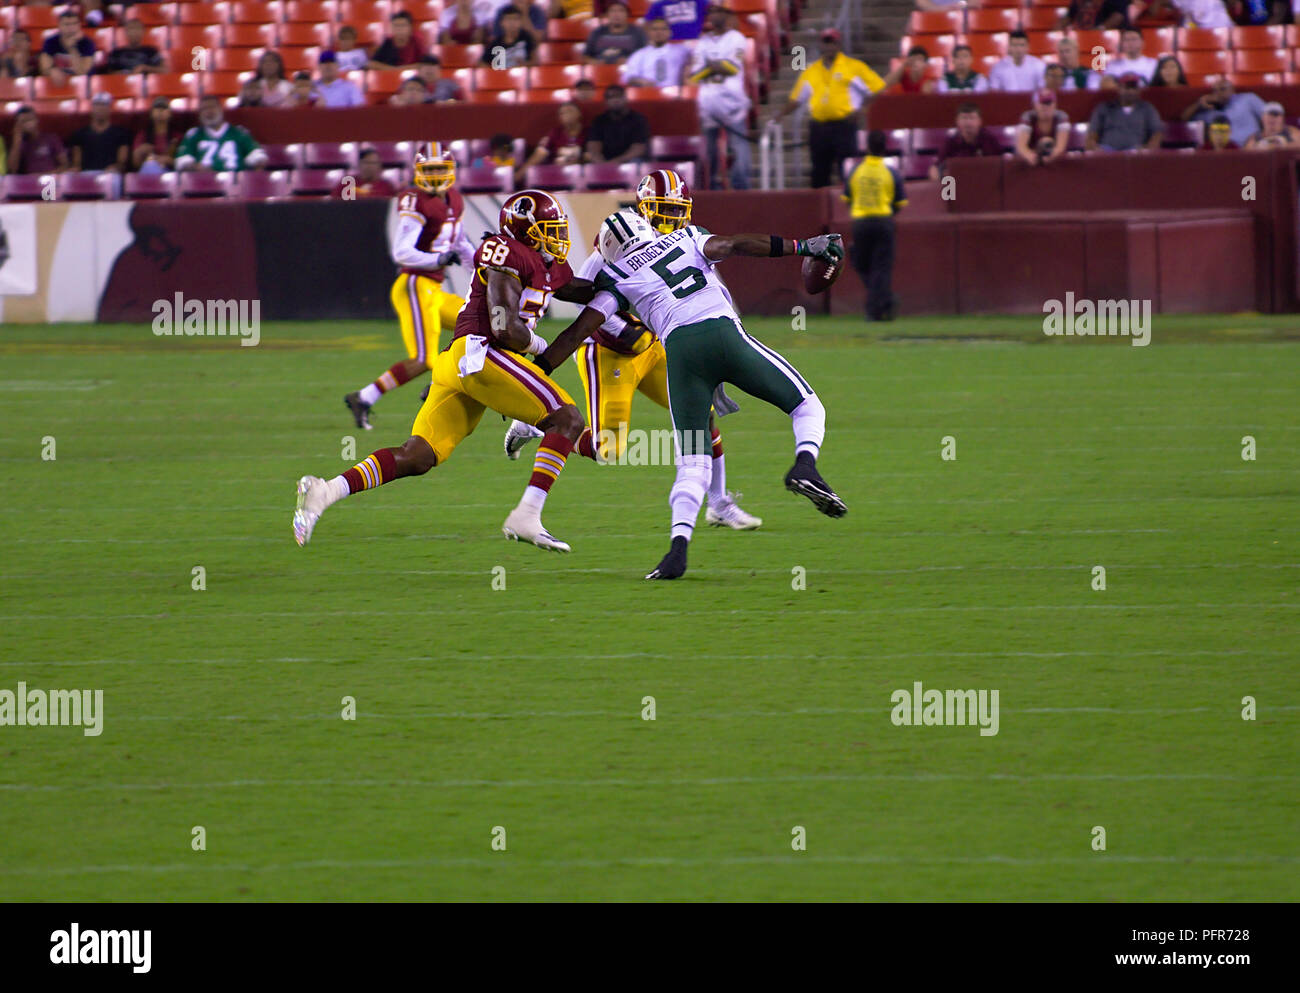 New York Jets Quarterback running the during Redskins home preseason game at FedEx Field - Stock Image